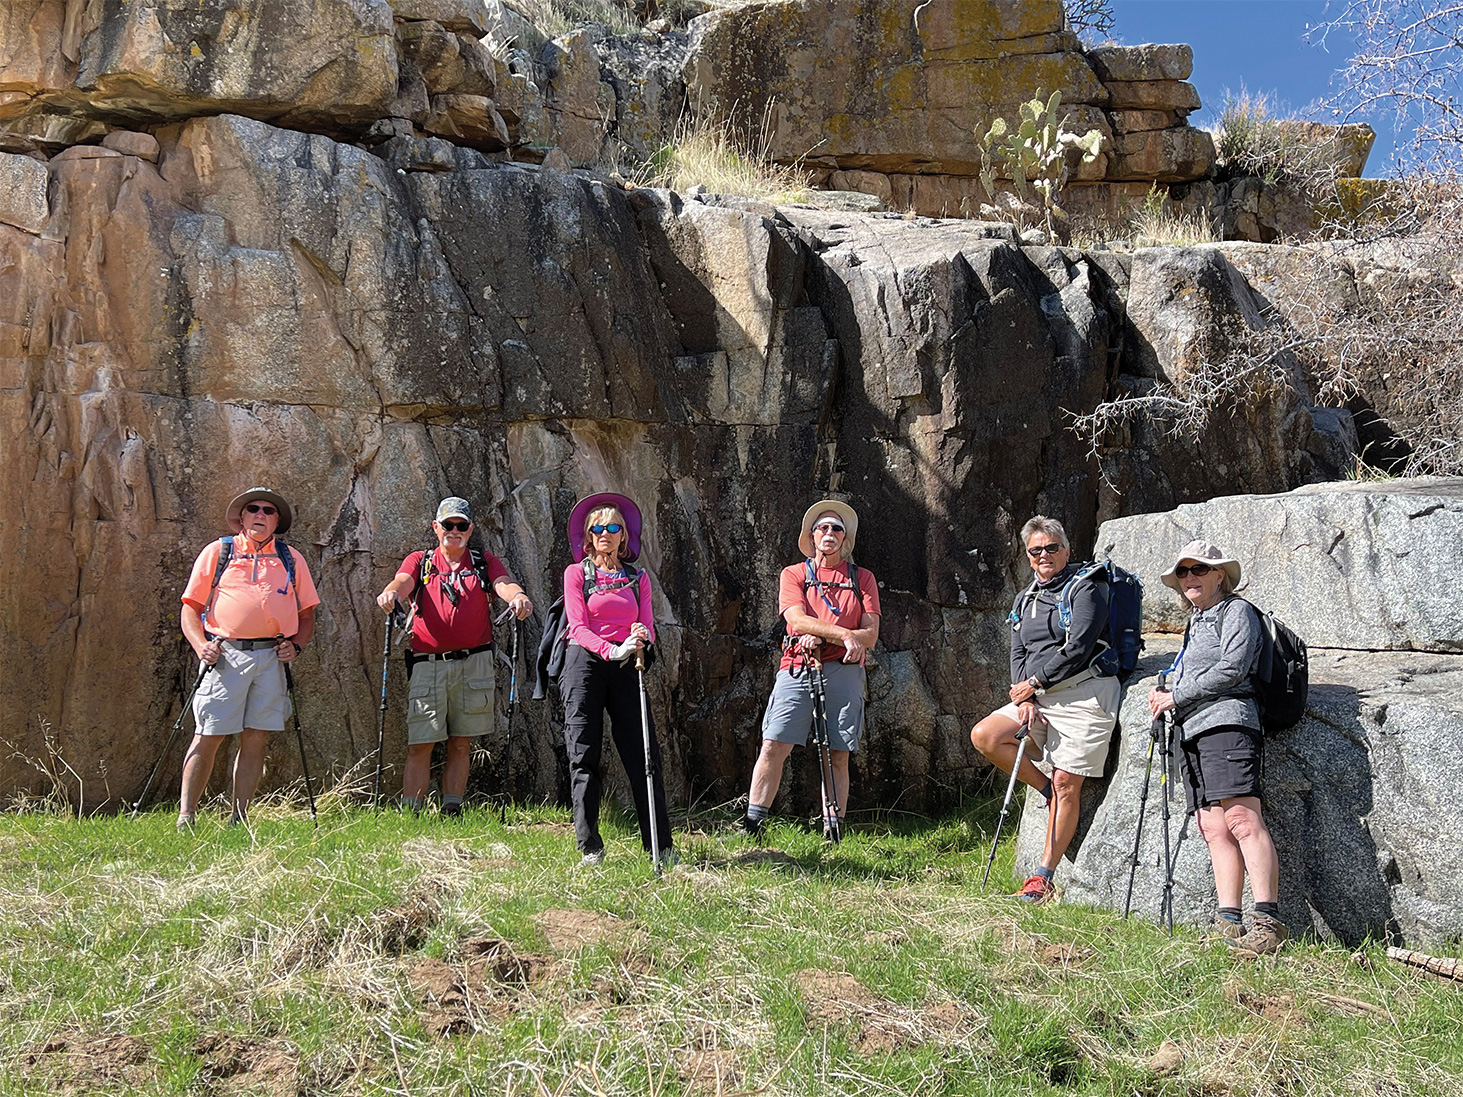 The hearty souls making this hike were (left to right): Mark Gruca, Dave Schuldt, Laurie Rosenbloom, Wayne McKinney, Diana Bedwell, and Linda Schmillen. (Photo by Dana Thomas)